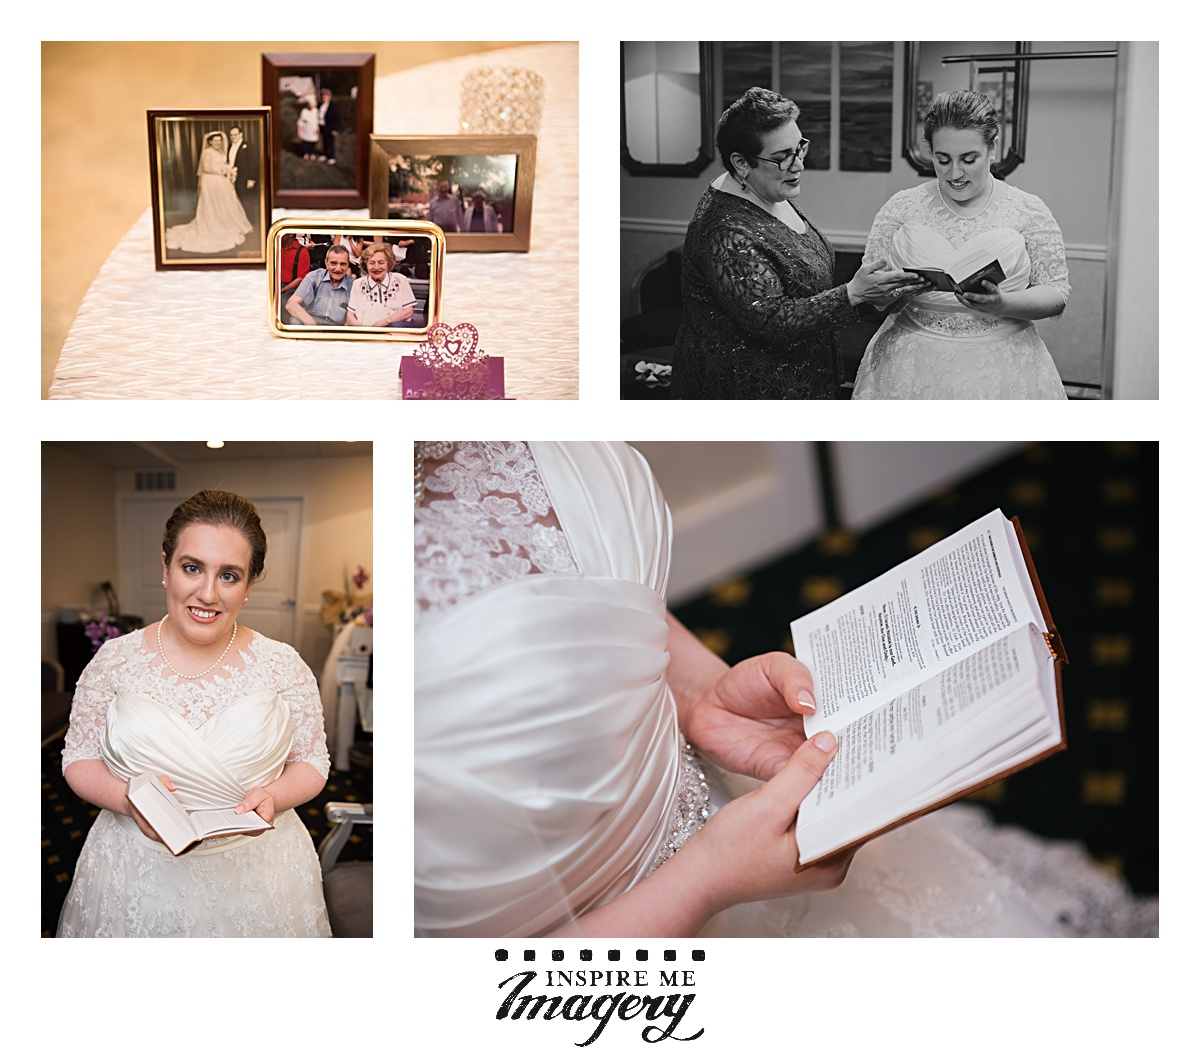 Family is so important, and a little place during a wedding with photos of loved ones we've lost is always a touching thing to see. You'll also see our kallah reading over some prayers before the day really gets rolling. It's good to have a moment to ground yourself before the chaos starts.